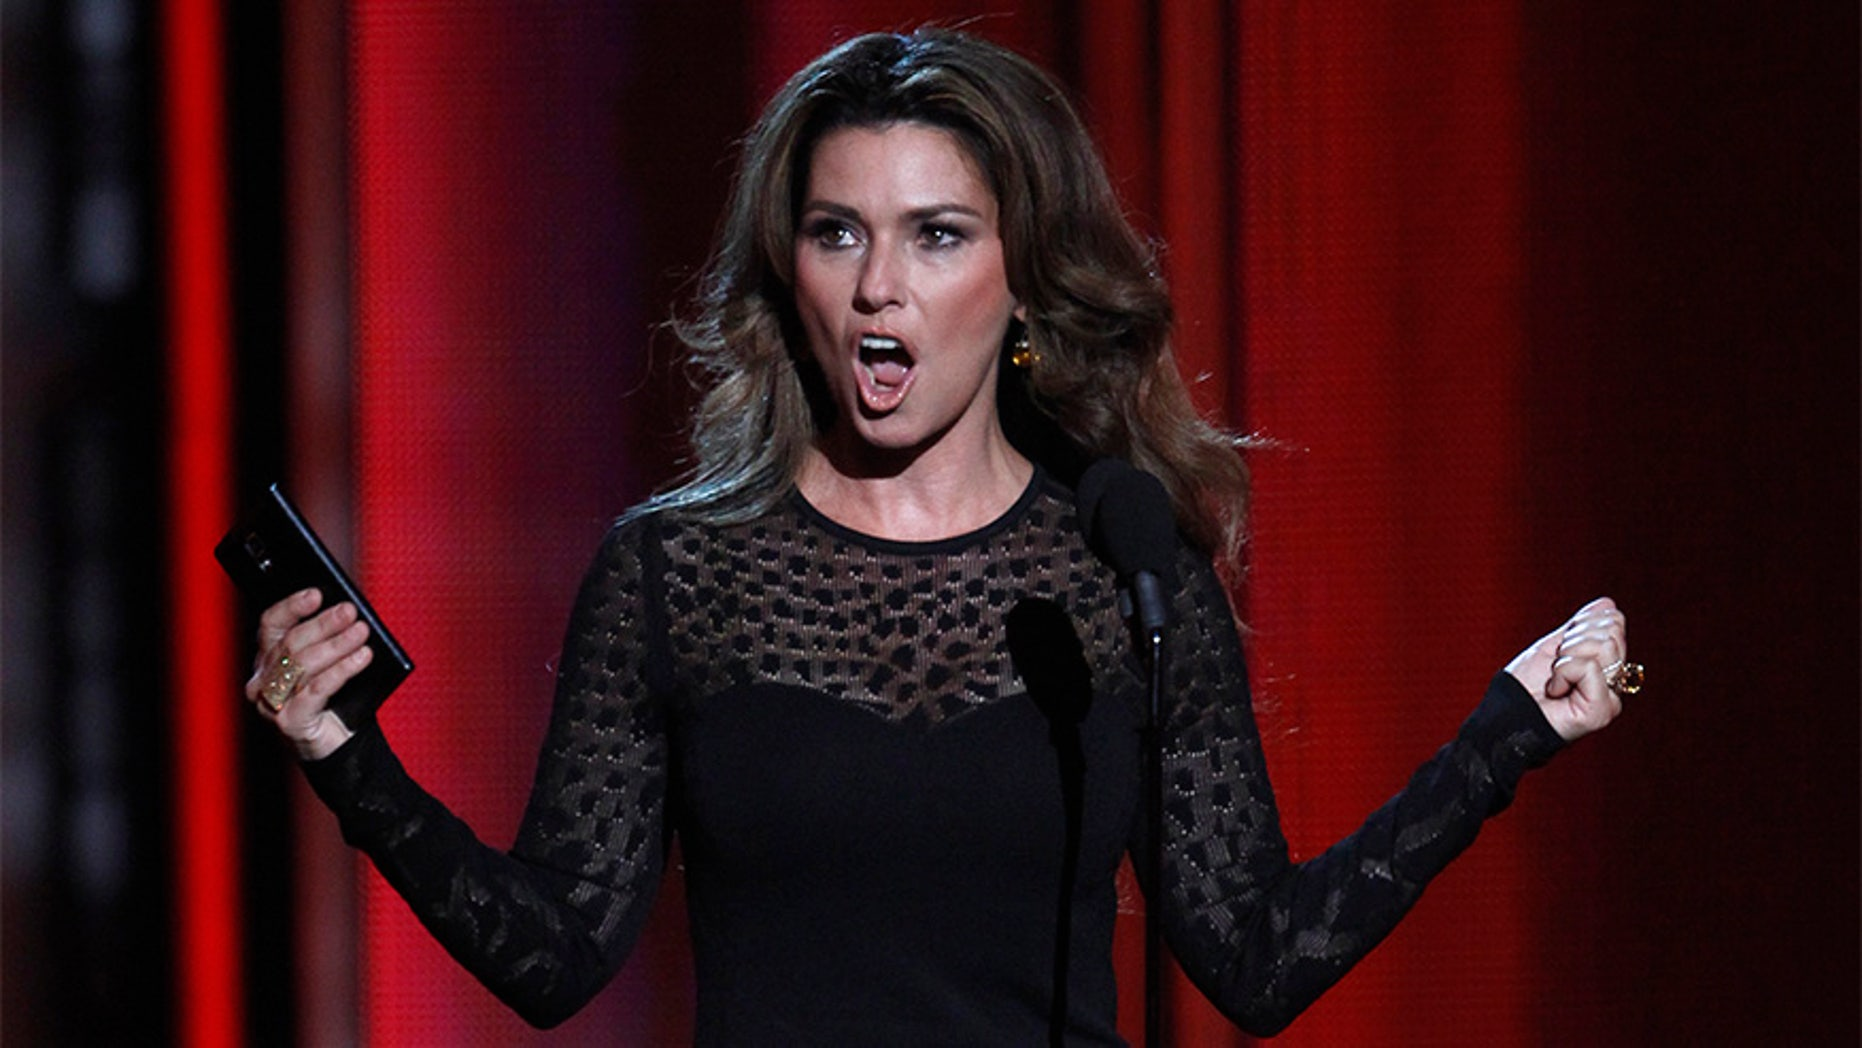 Country singer Shania Twain presents an award at the 2014 Billboard Music Awards in Las Vegas.